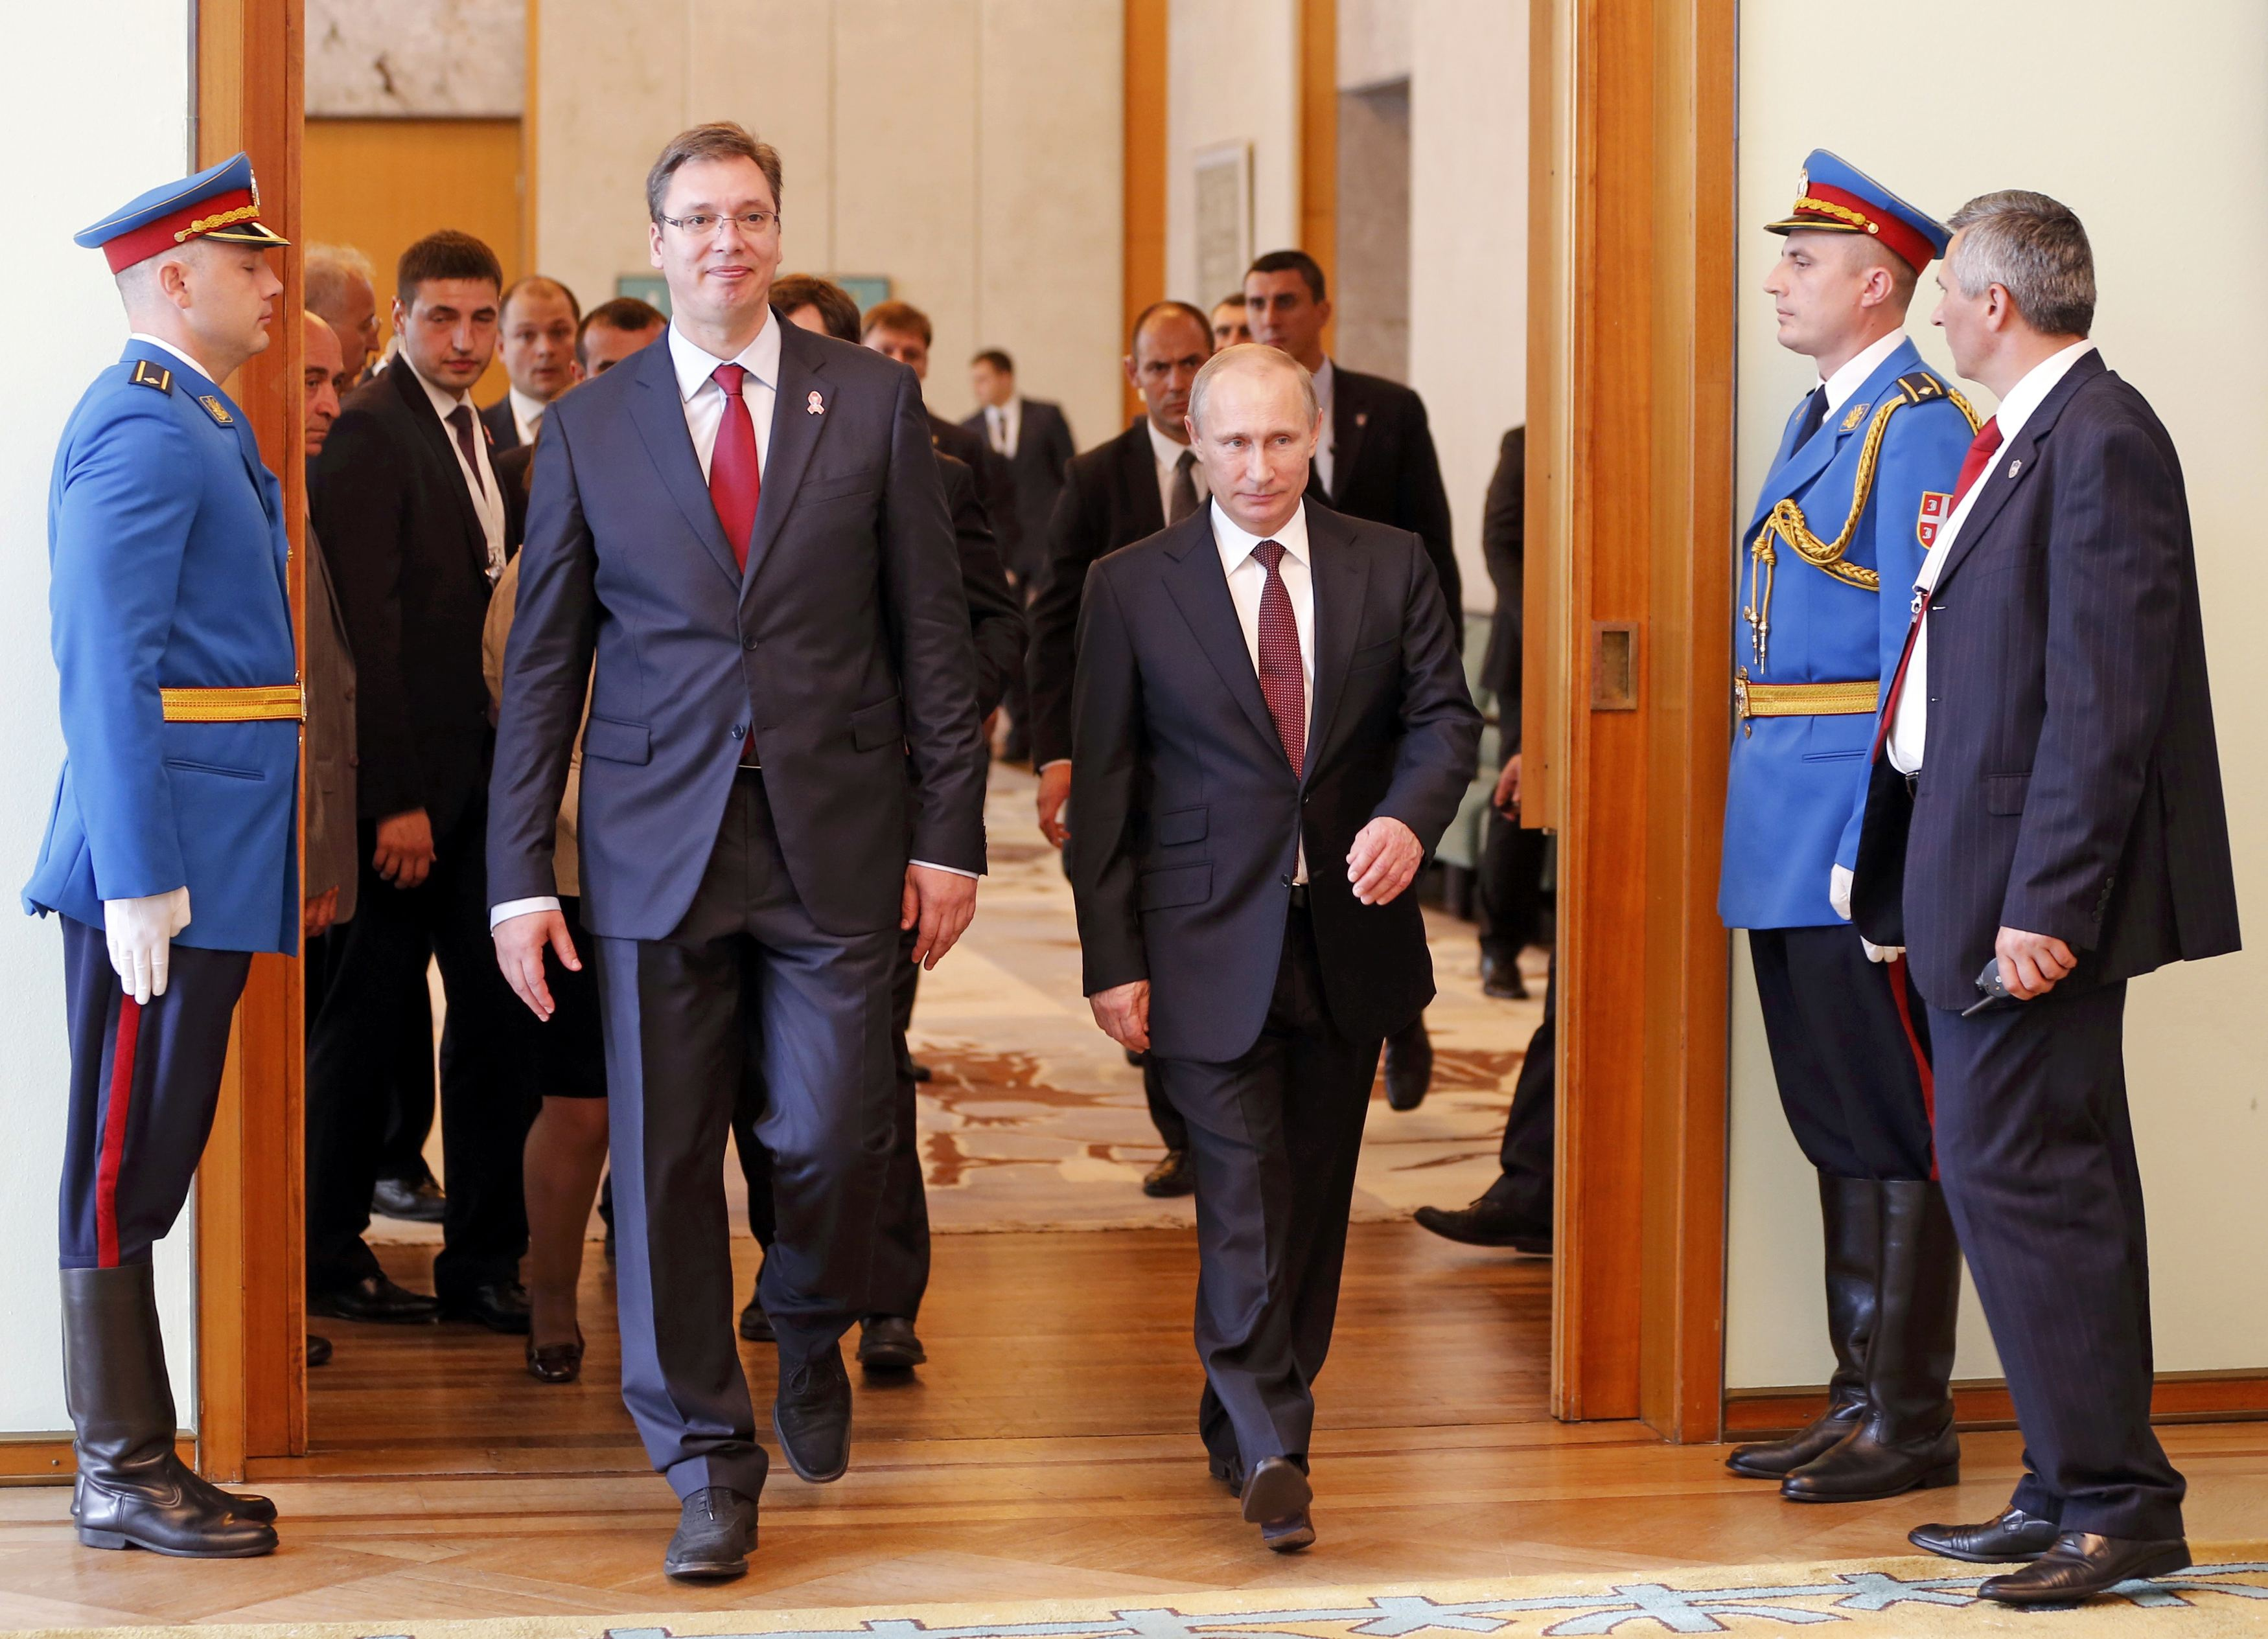 Serbia Salutes Putin But Sees Future With Europe World